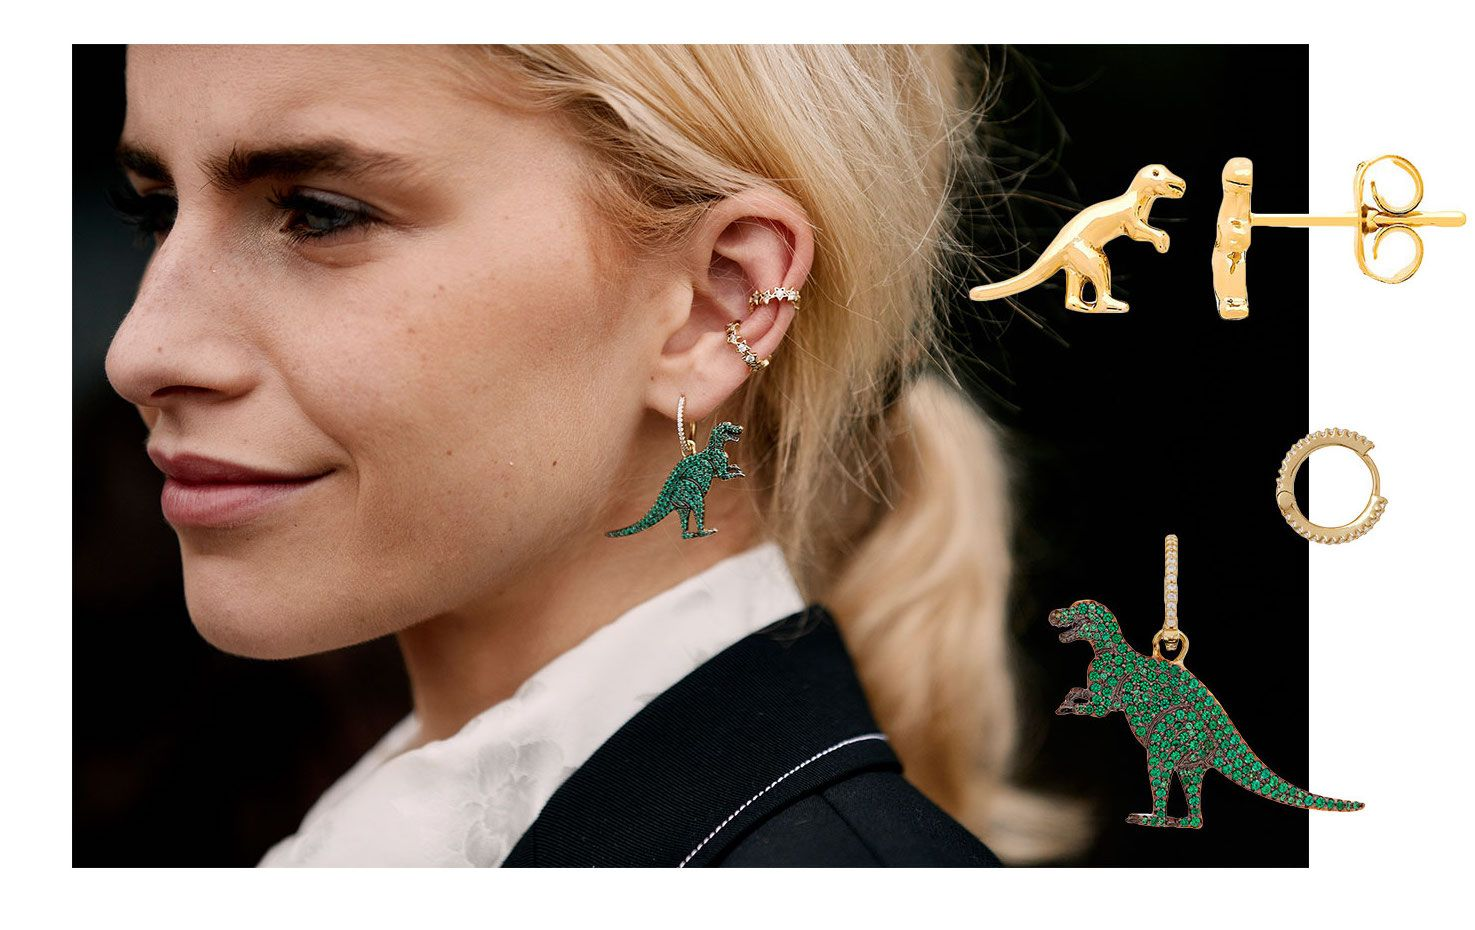 Street style dinosaur - t-rex earrings